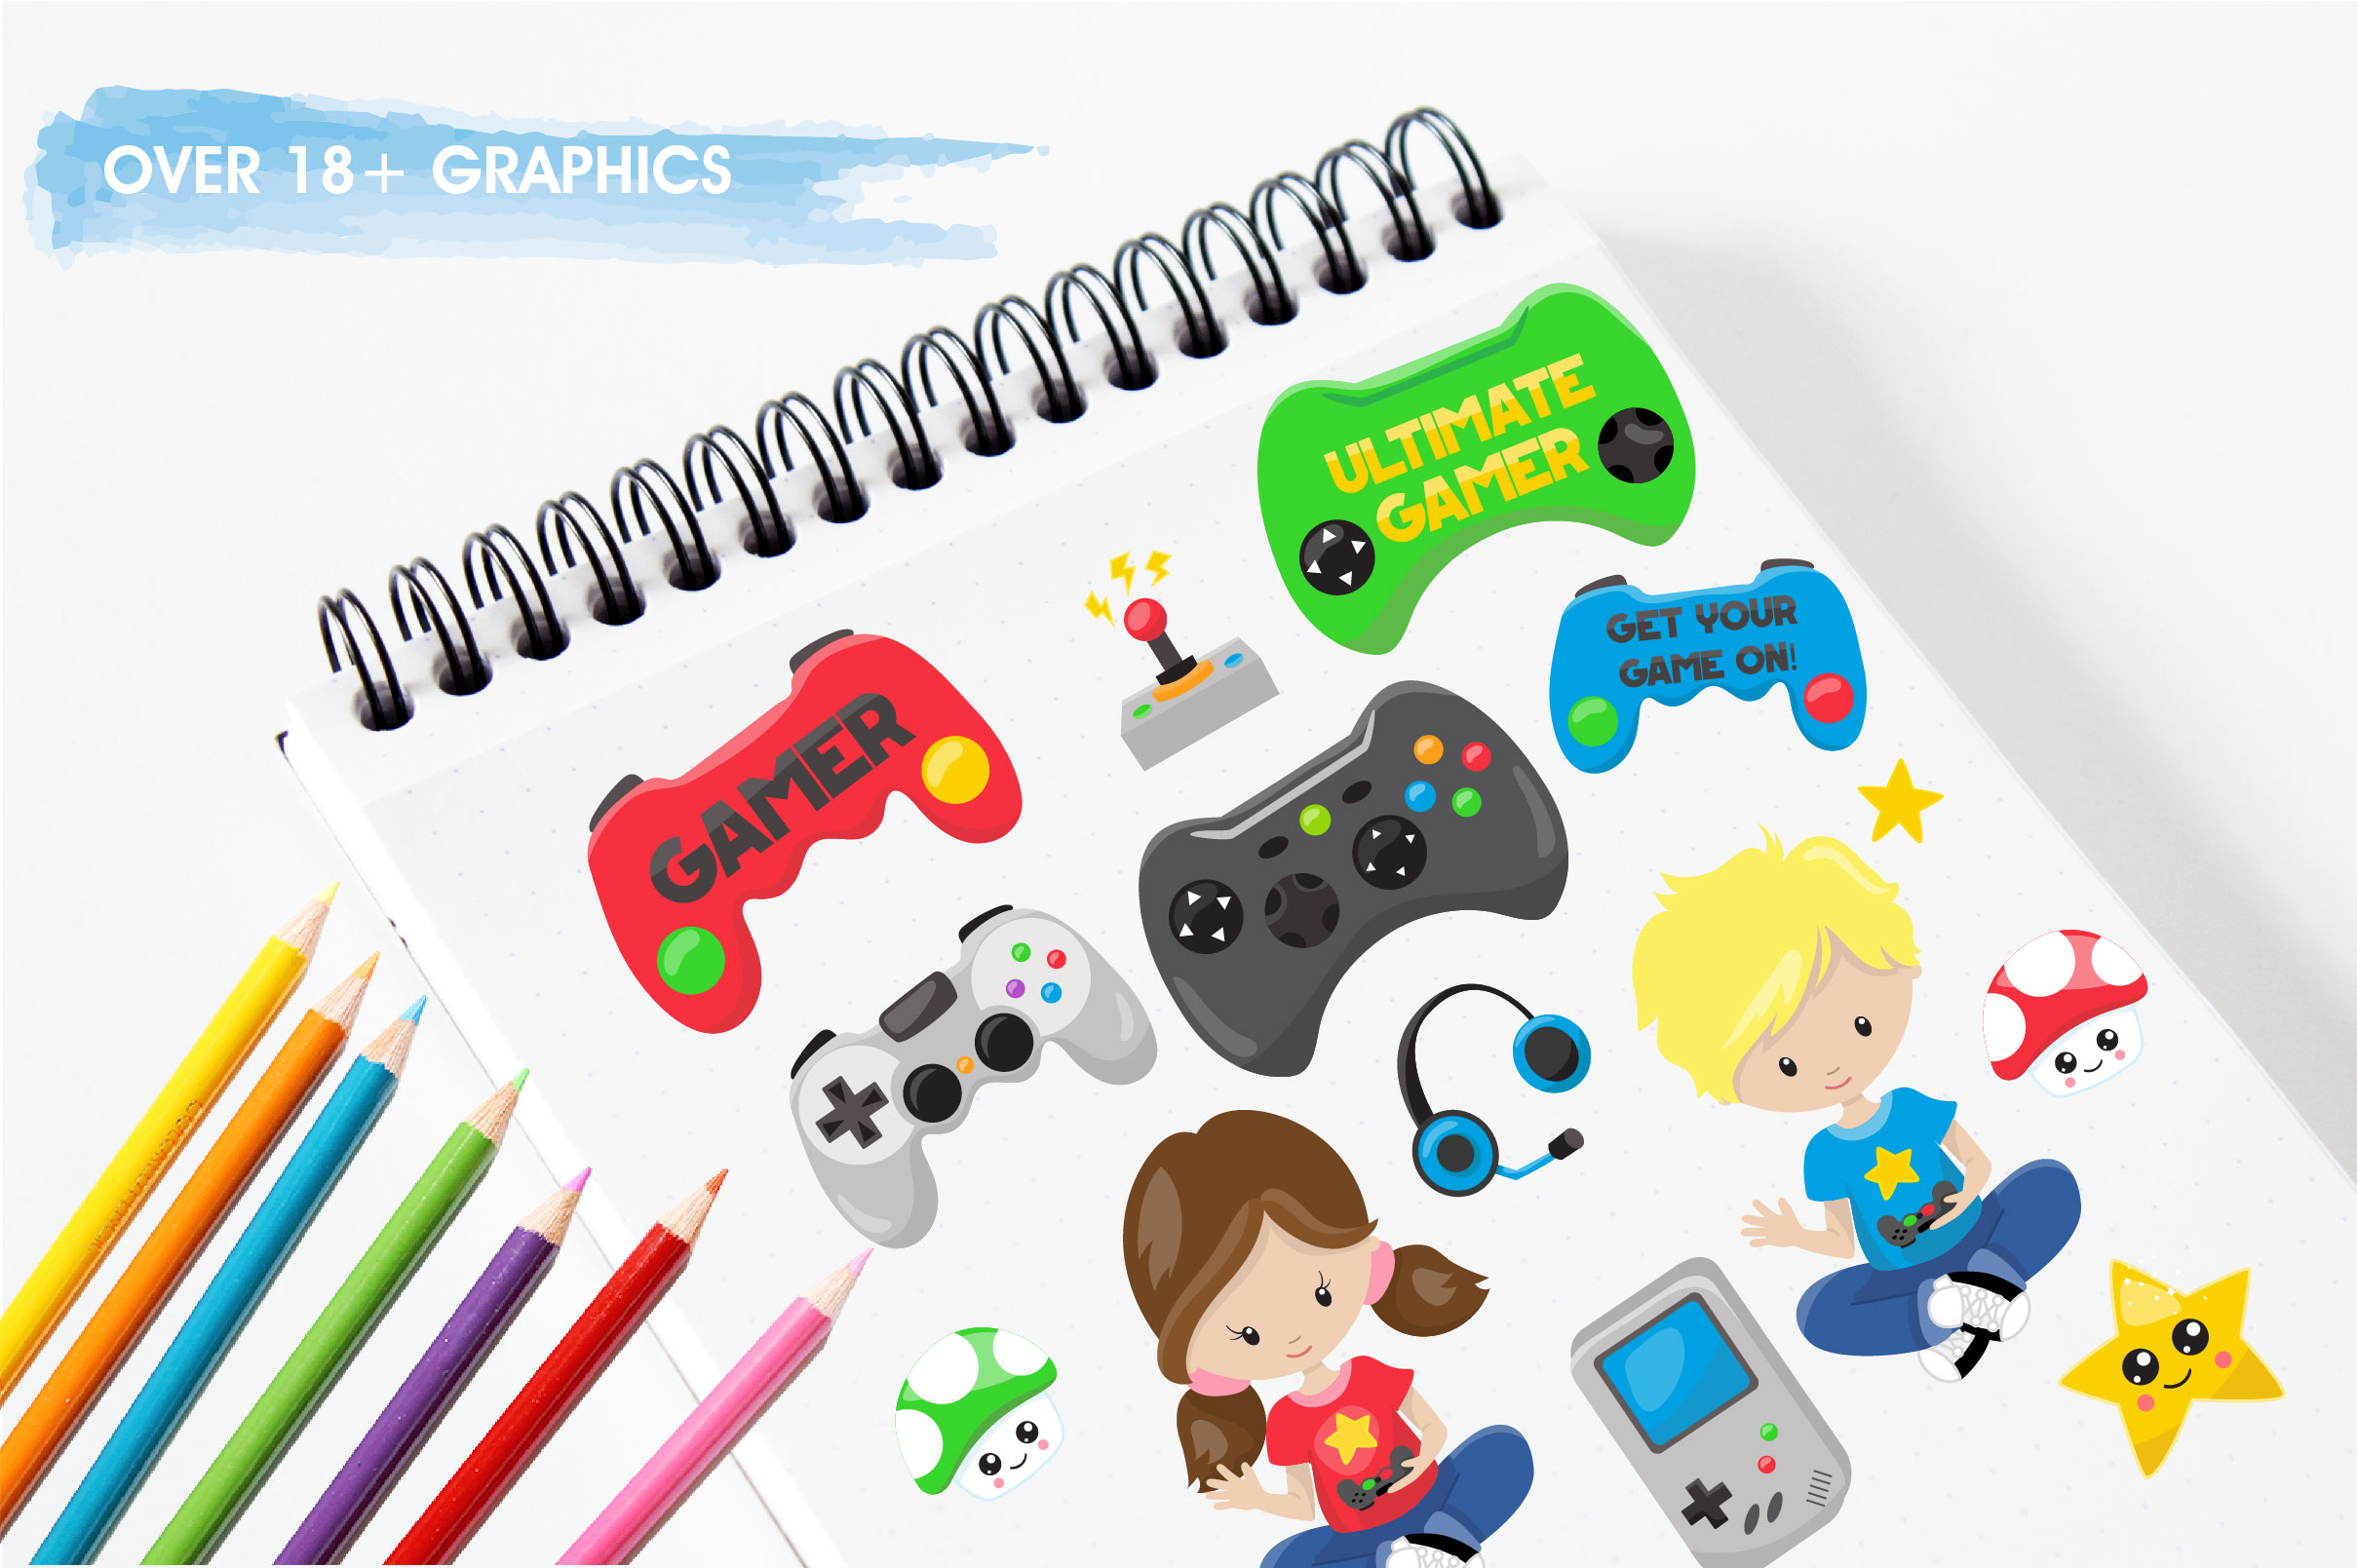 Game kids graphics and illustrations example image 4